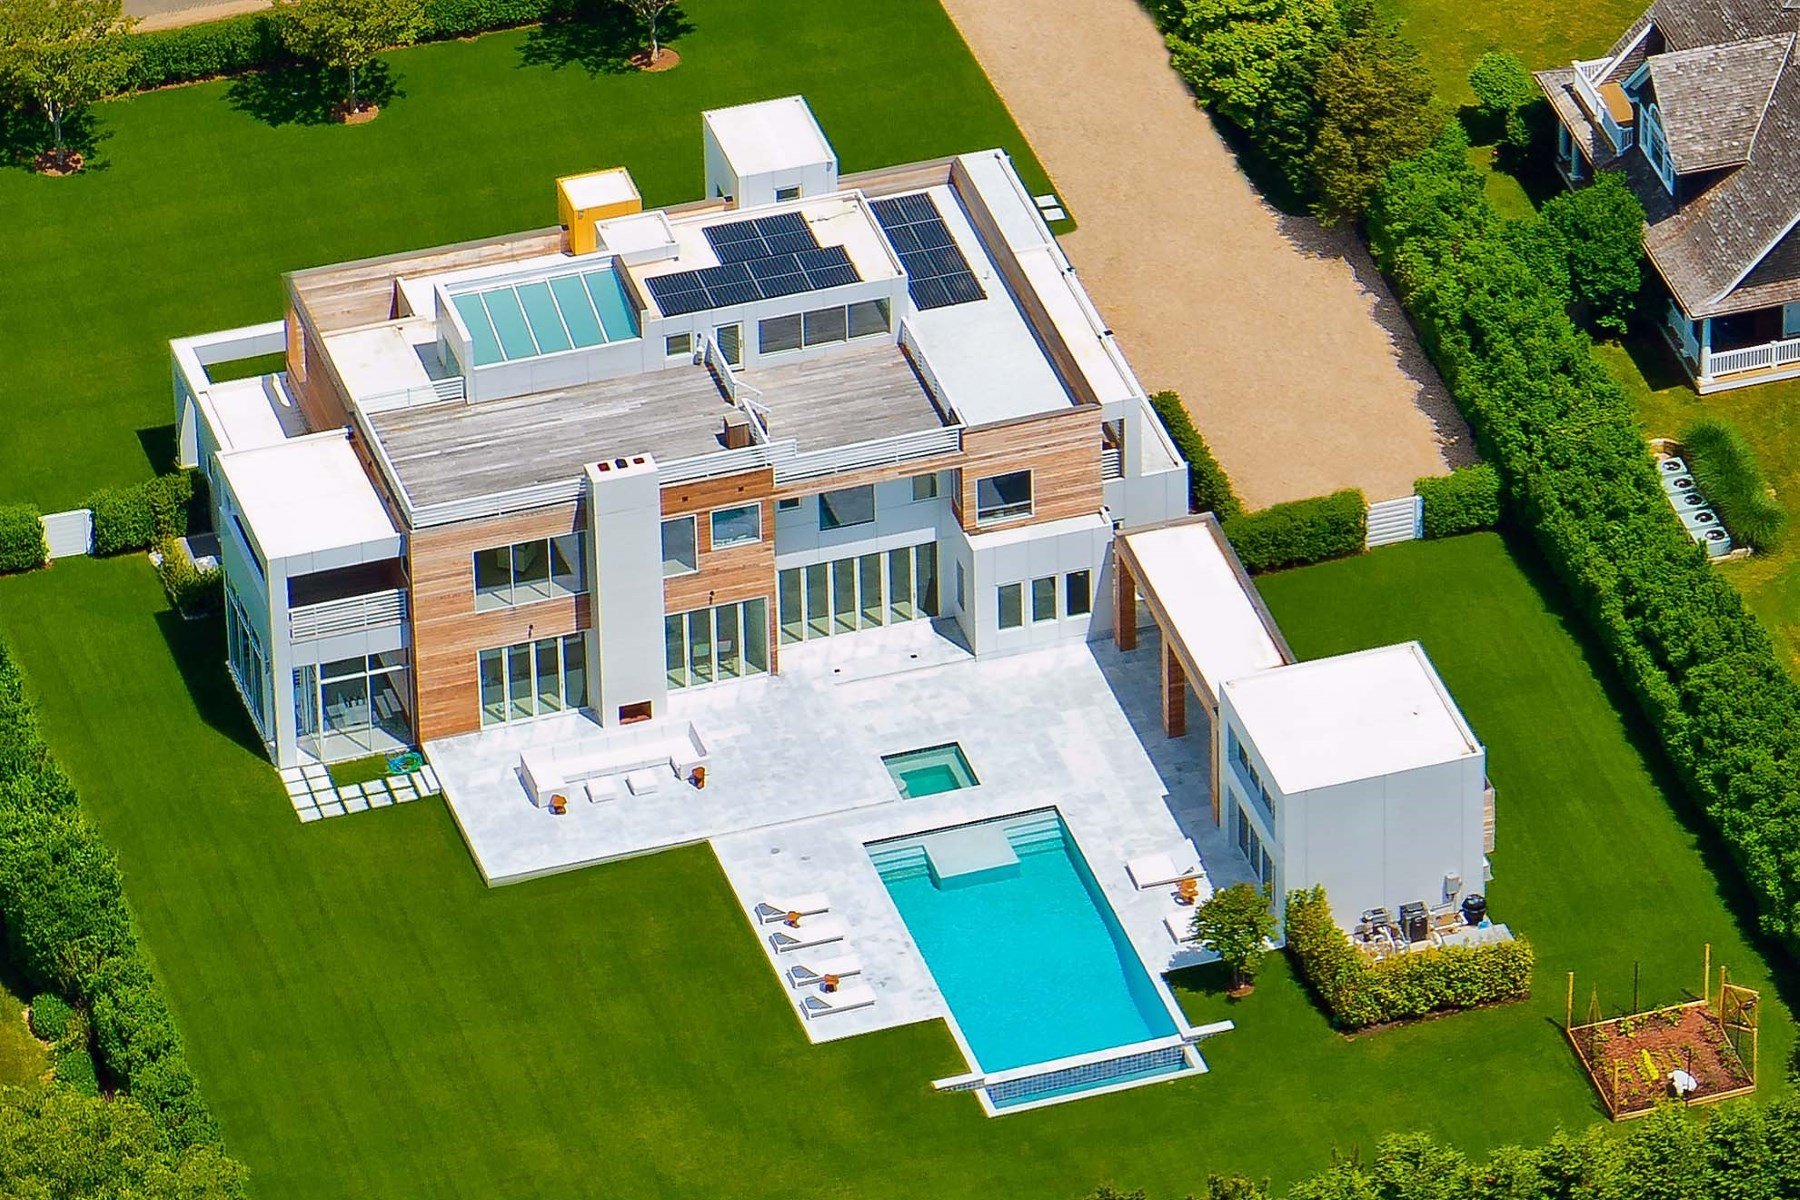 独户住宅 为 销售 在 Sleek New Modern on Meadowlark 81 Meadowlark Lane Bridgehampton South, 汉普顿, 纽约州, 11932 美国